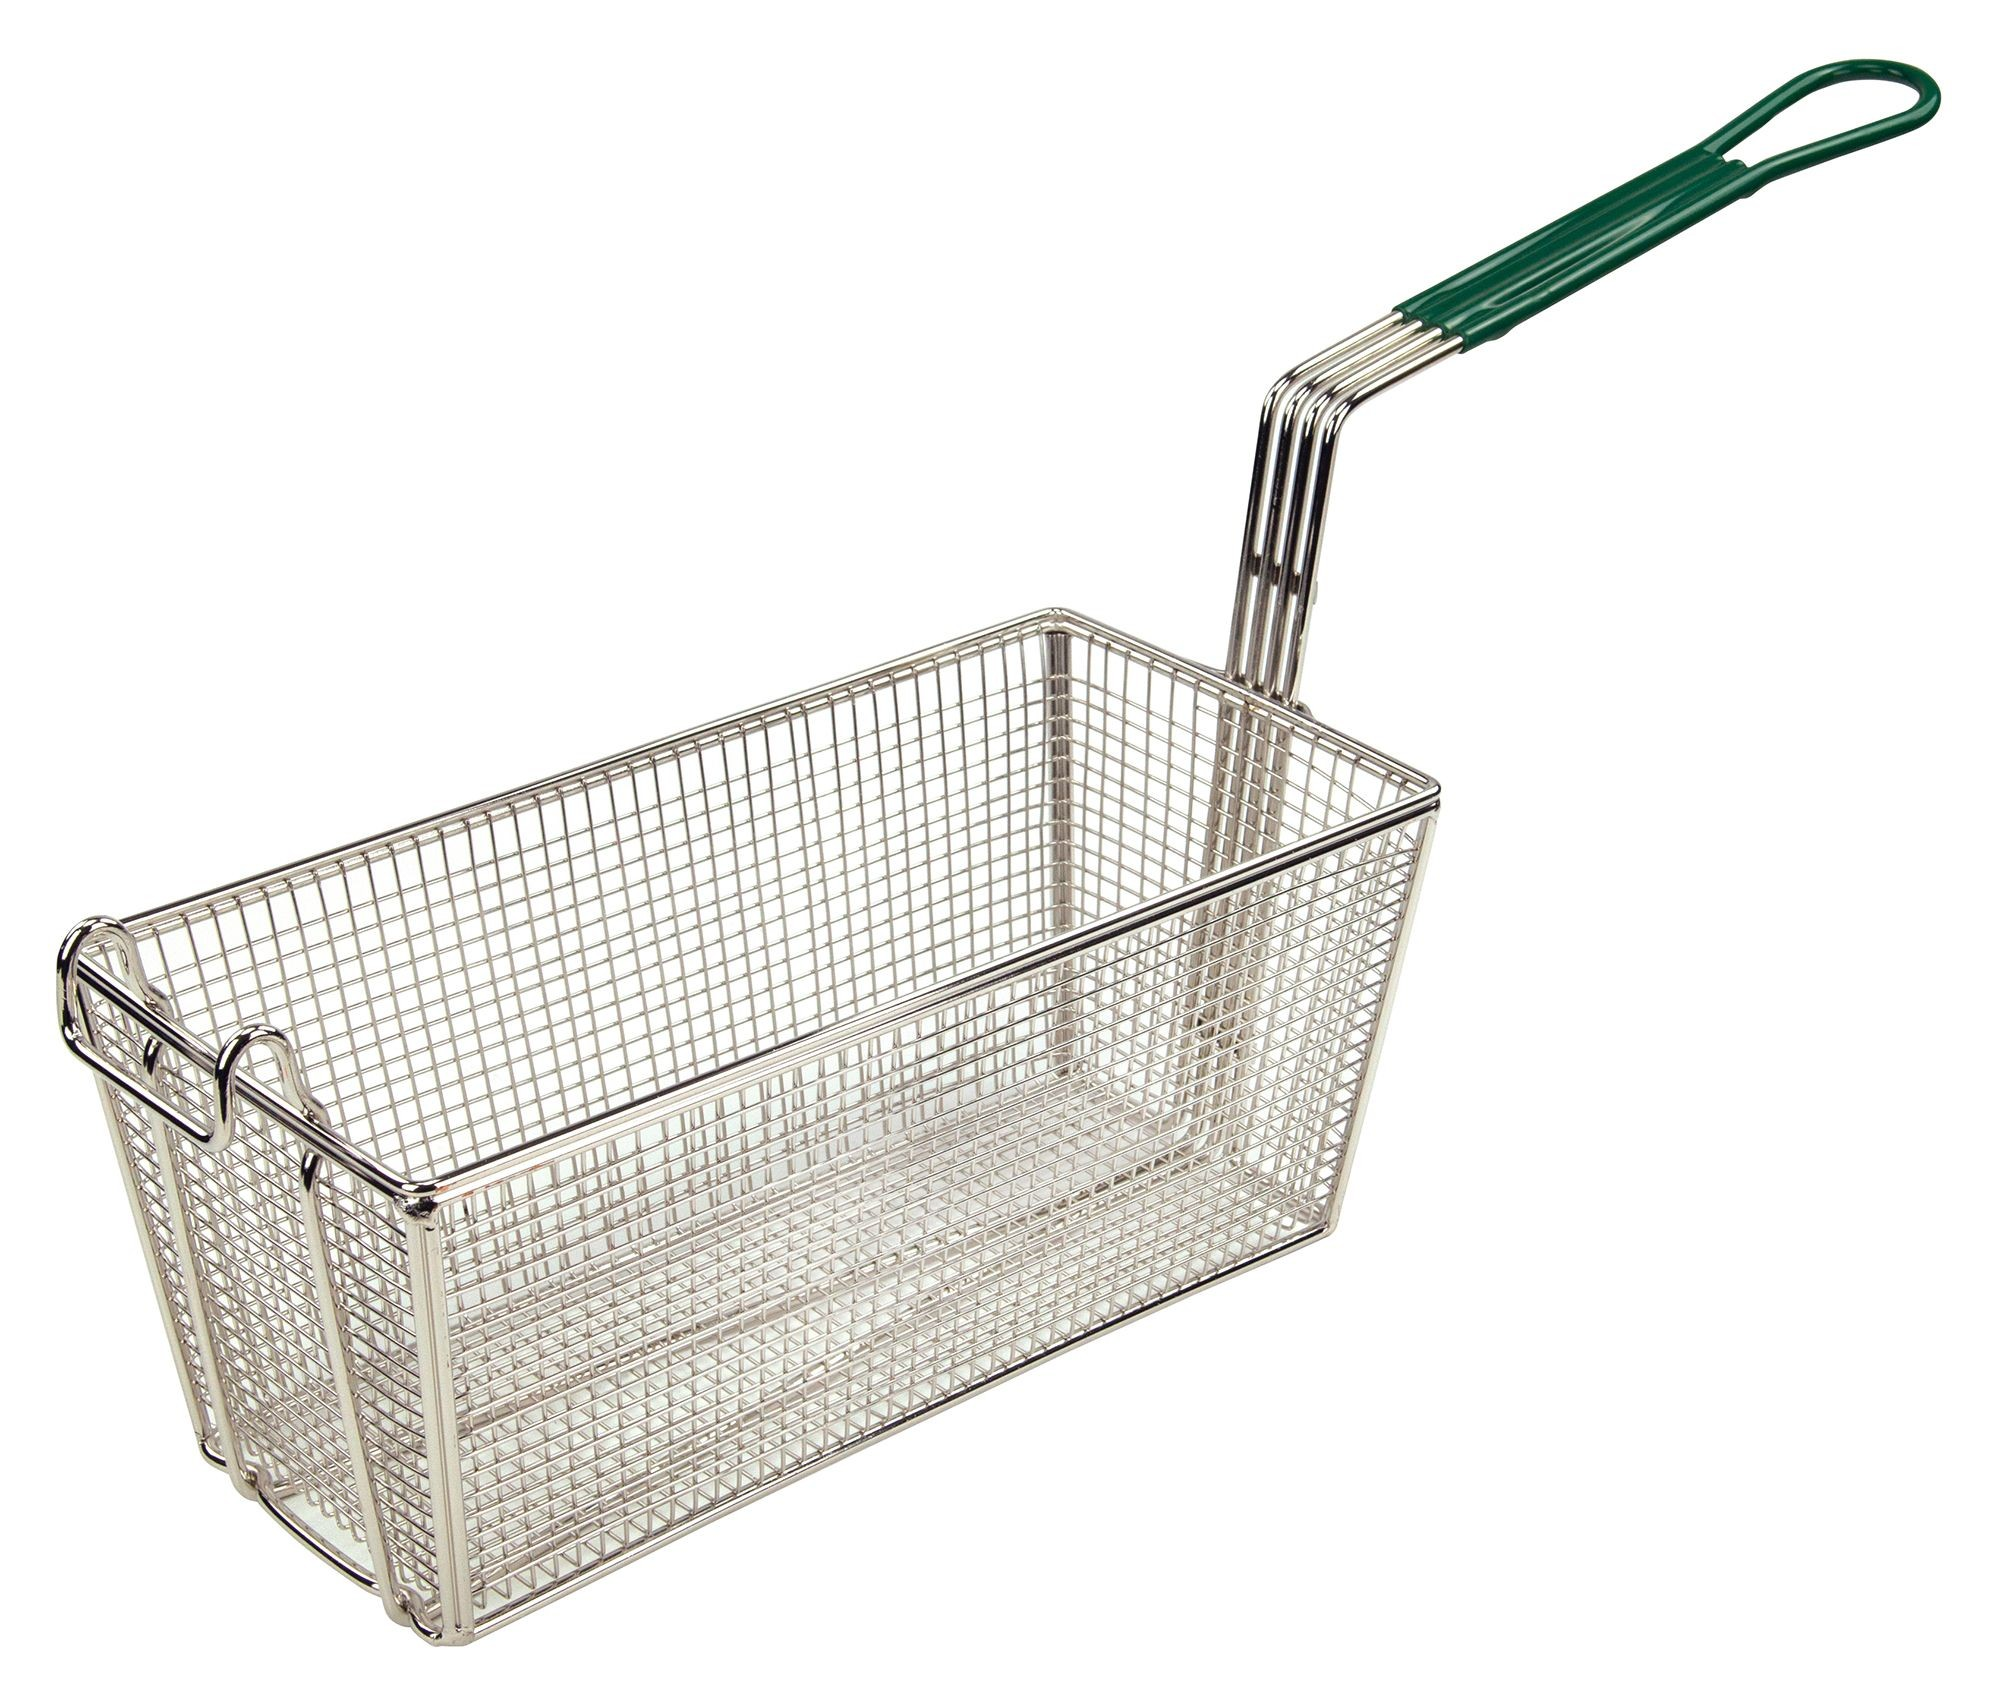 "Winco FB-30 Fry Basket with Green Plastic Handle 13-1/4"" x 6-1/2"" x 5-7/8"""